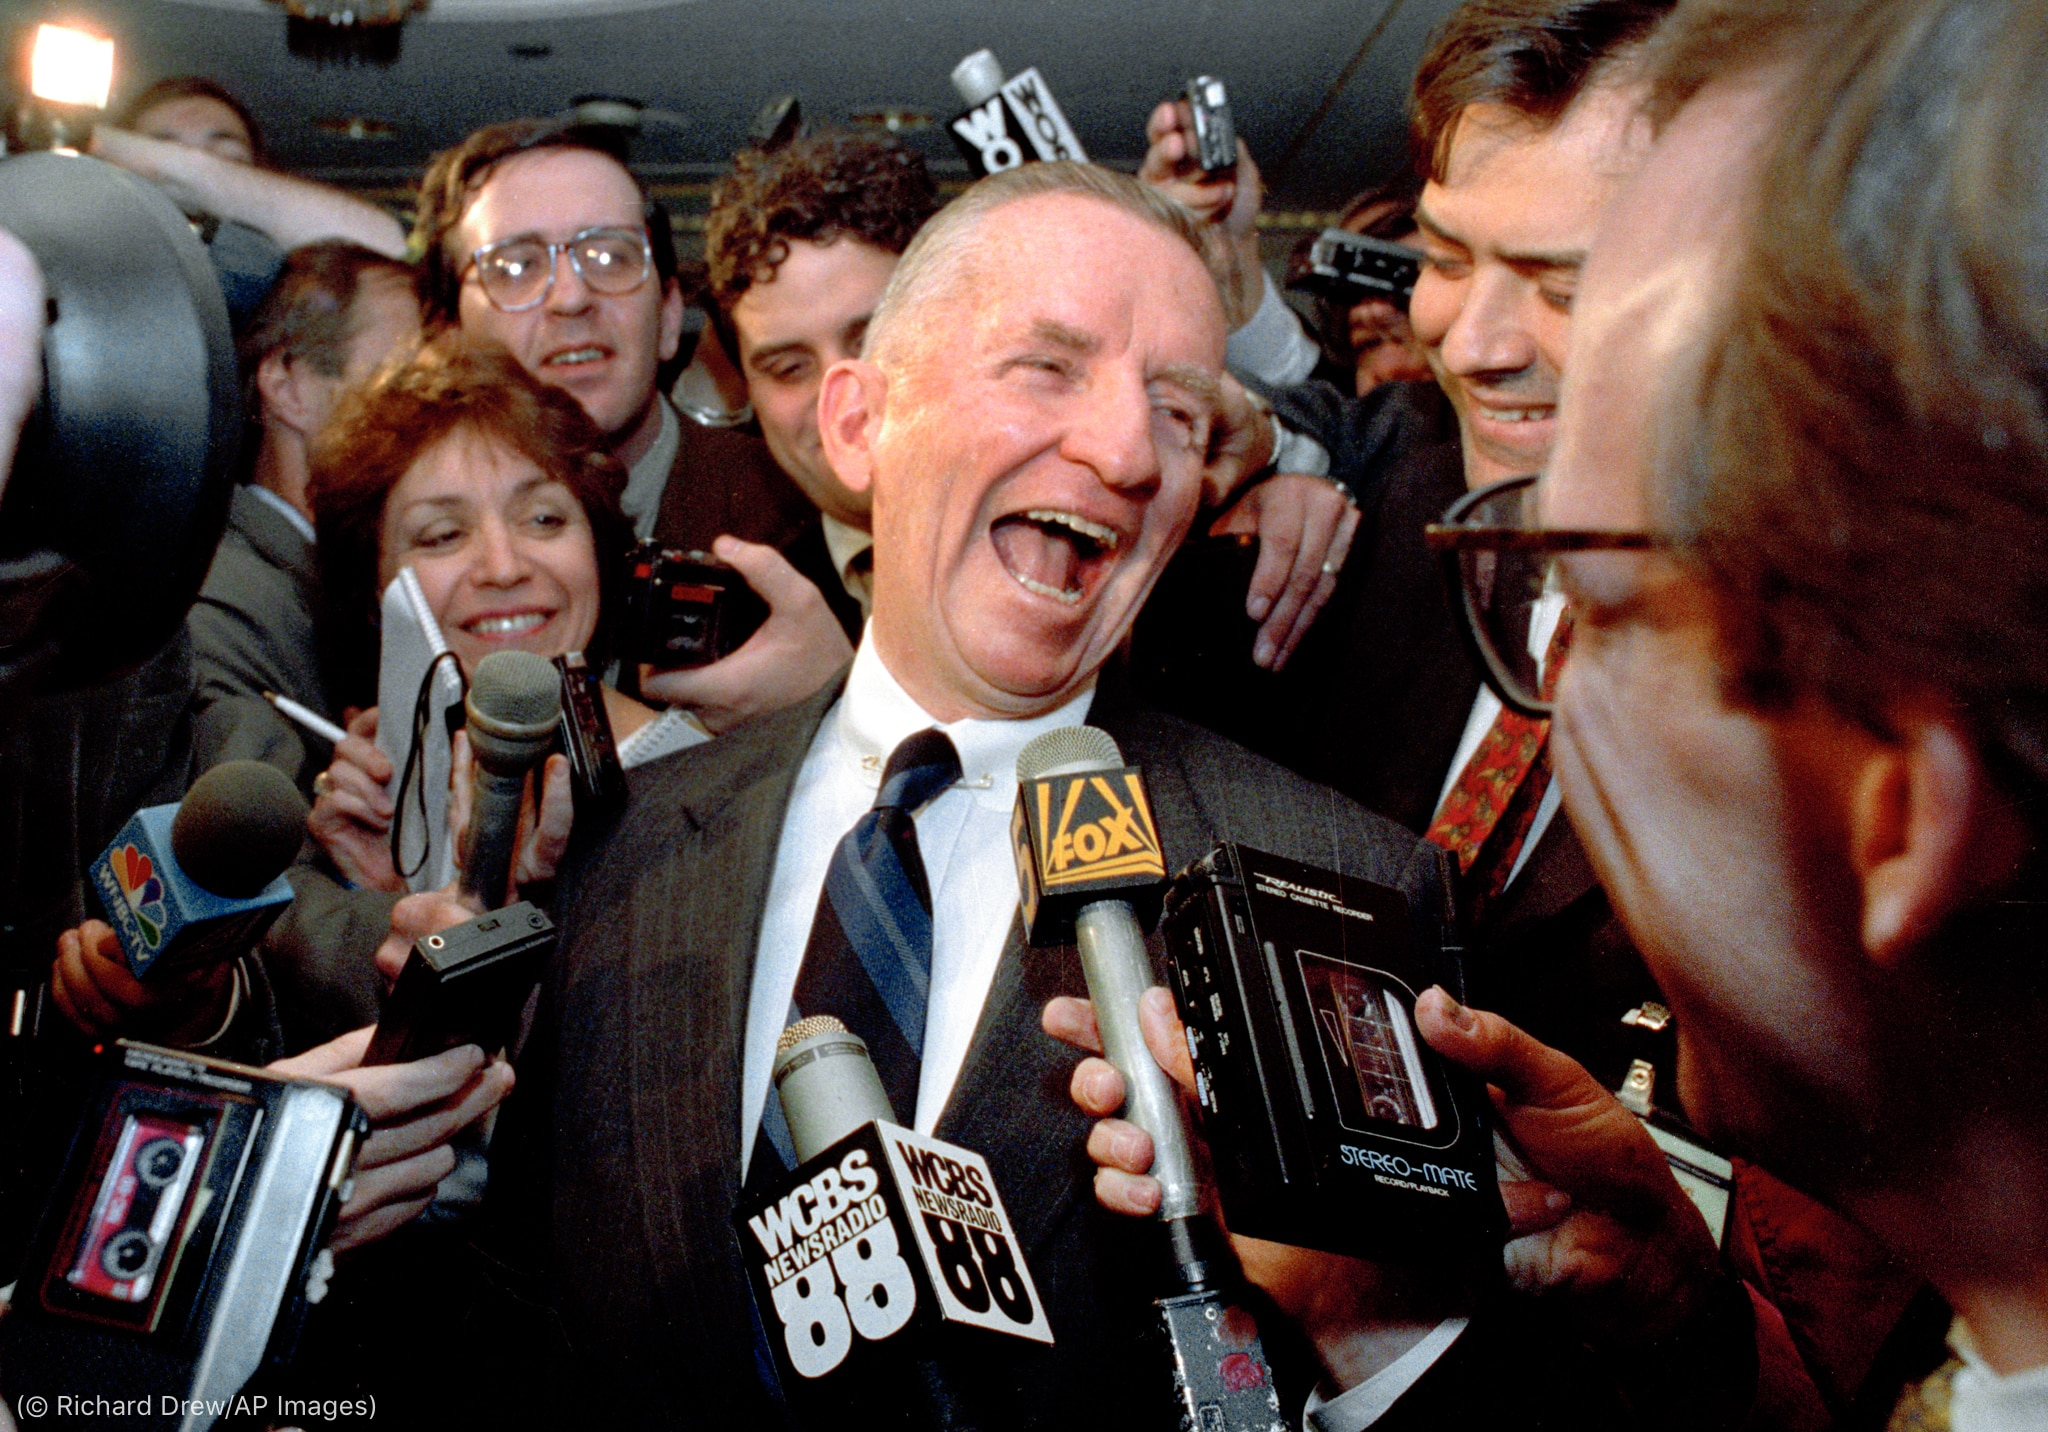 Ross Perot laughing while surrounded by reporters (© Richard Drew/AP Images)